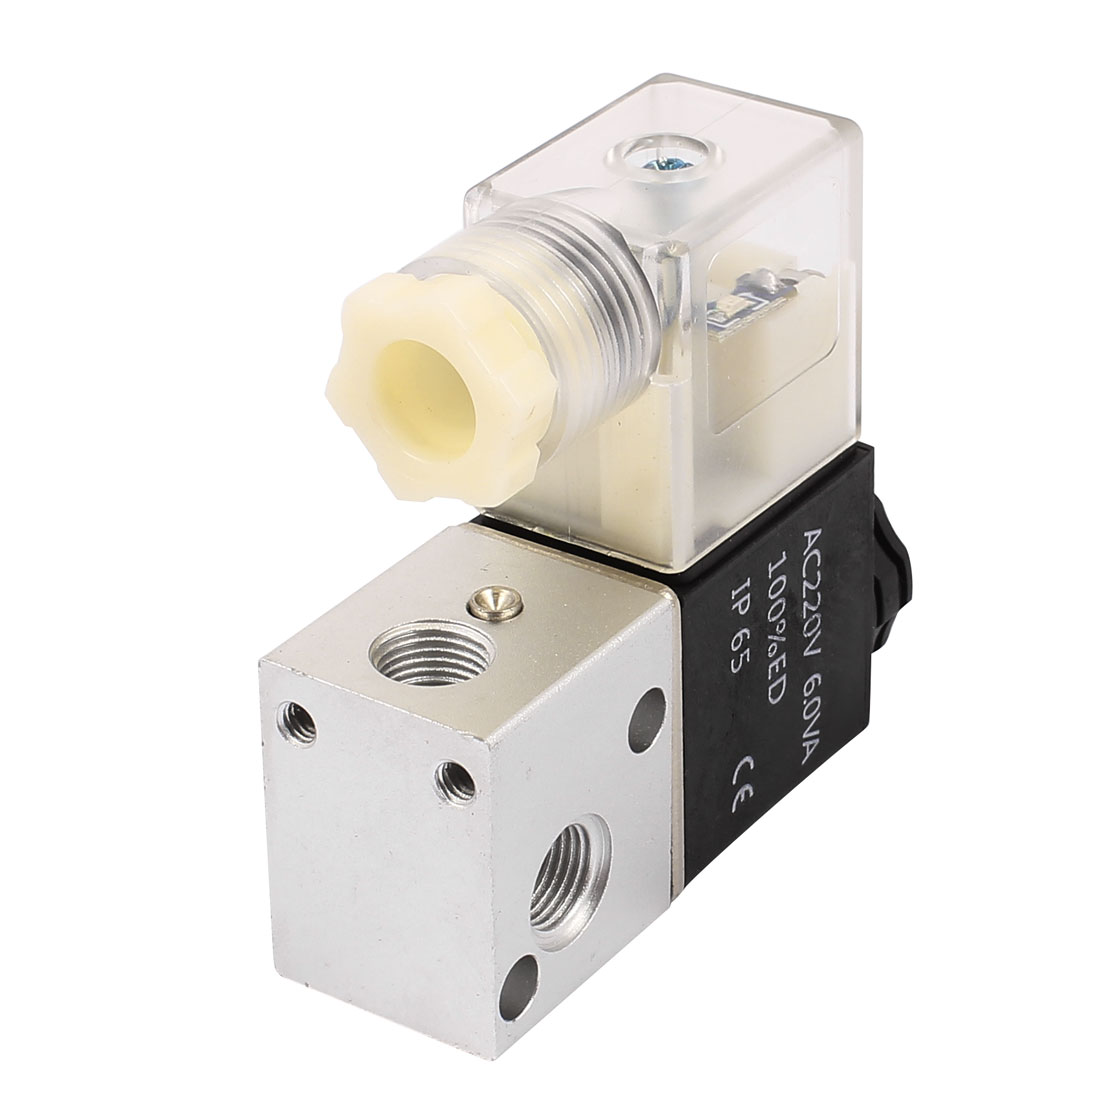 3V1-06 AC 220V NC 2 Position 3 Way RC1/8 Thread Neutral Air Selector Solenoid Valve